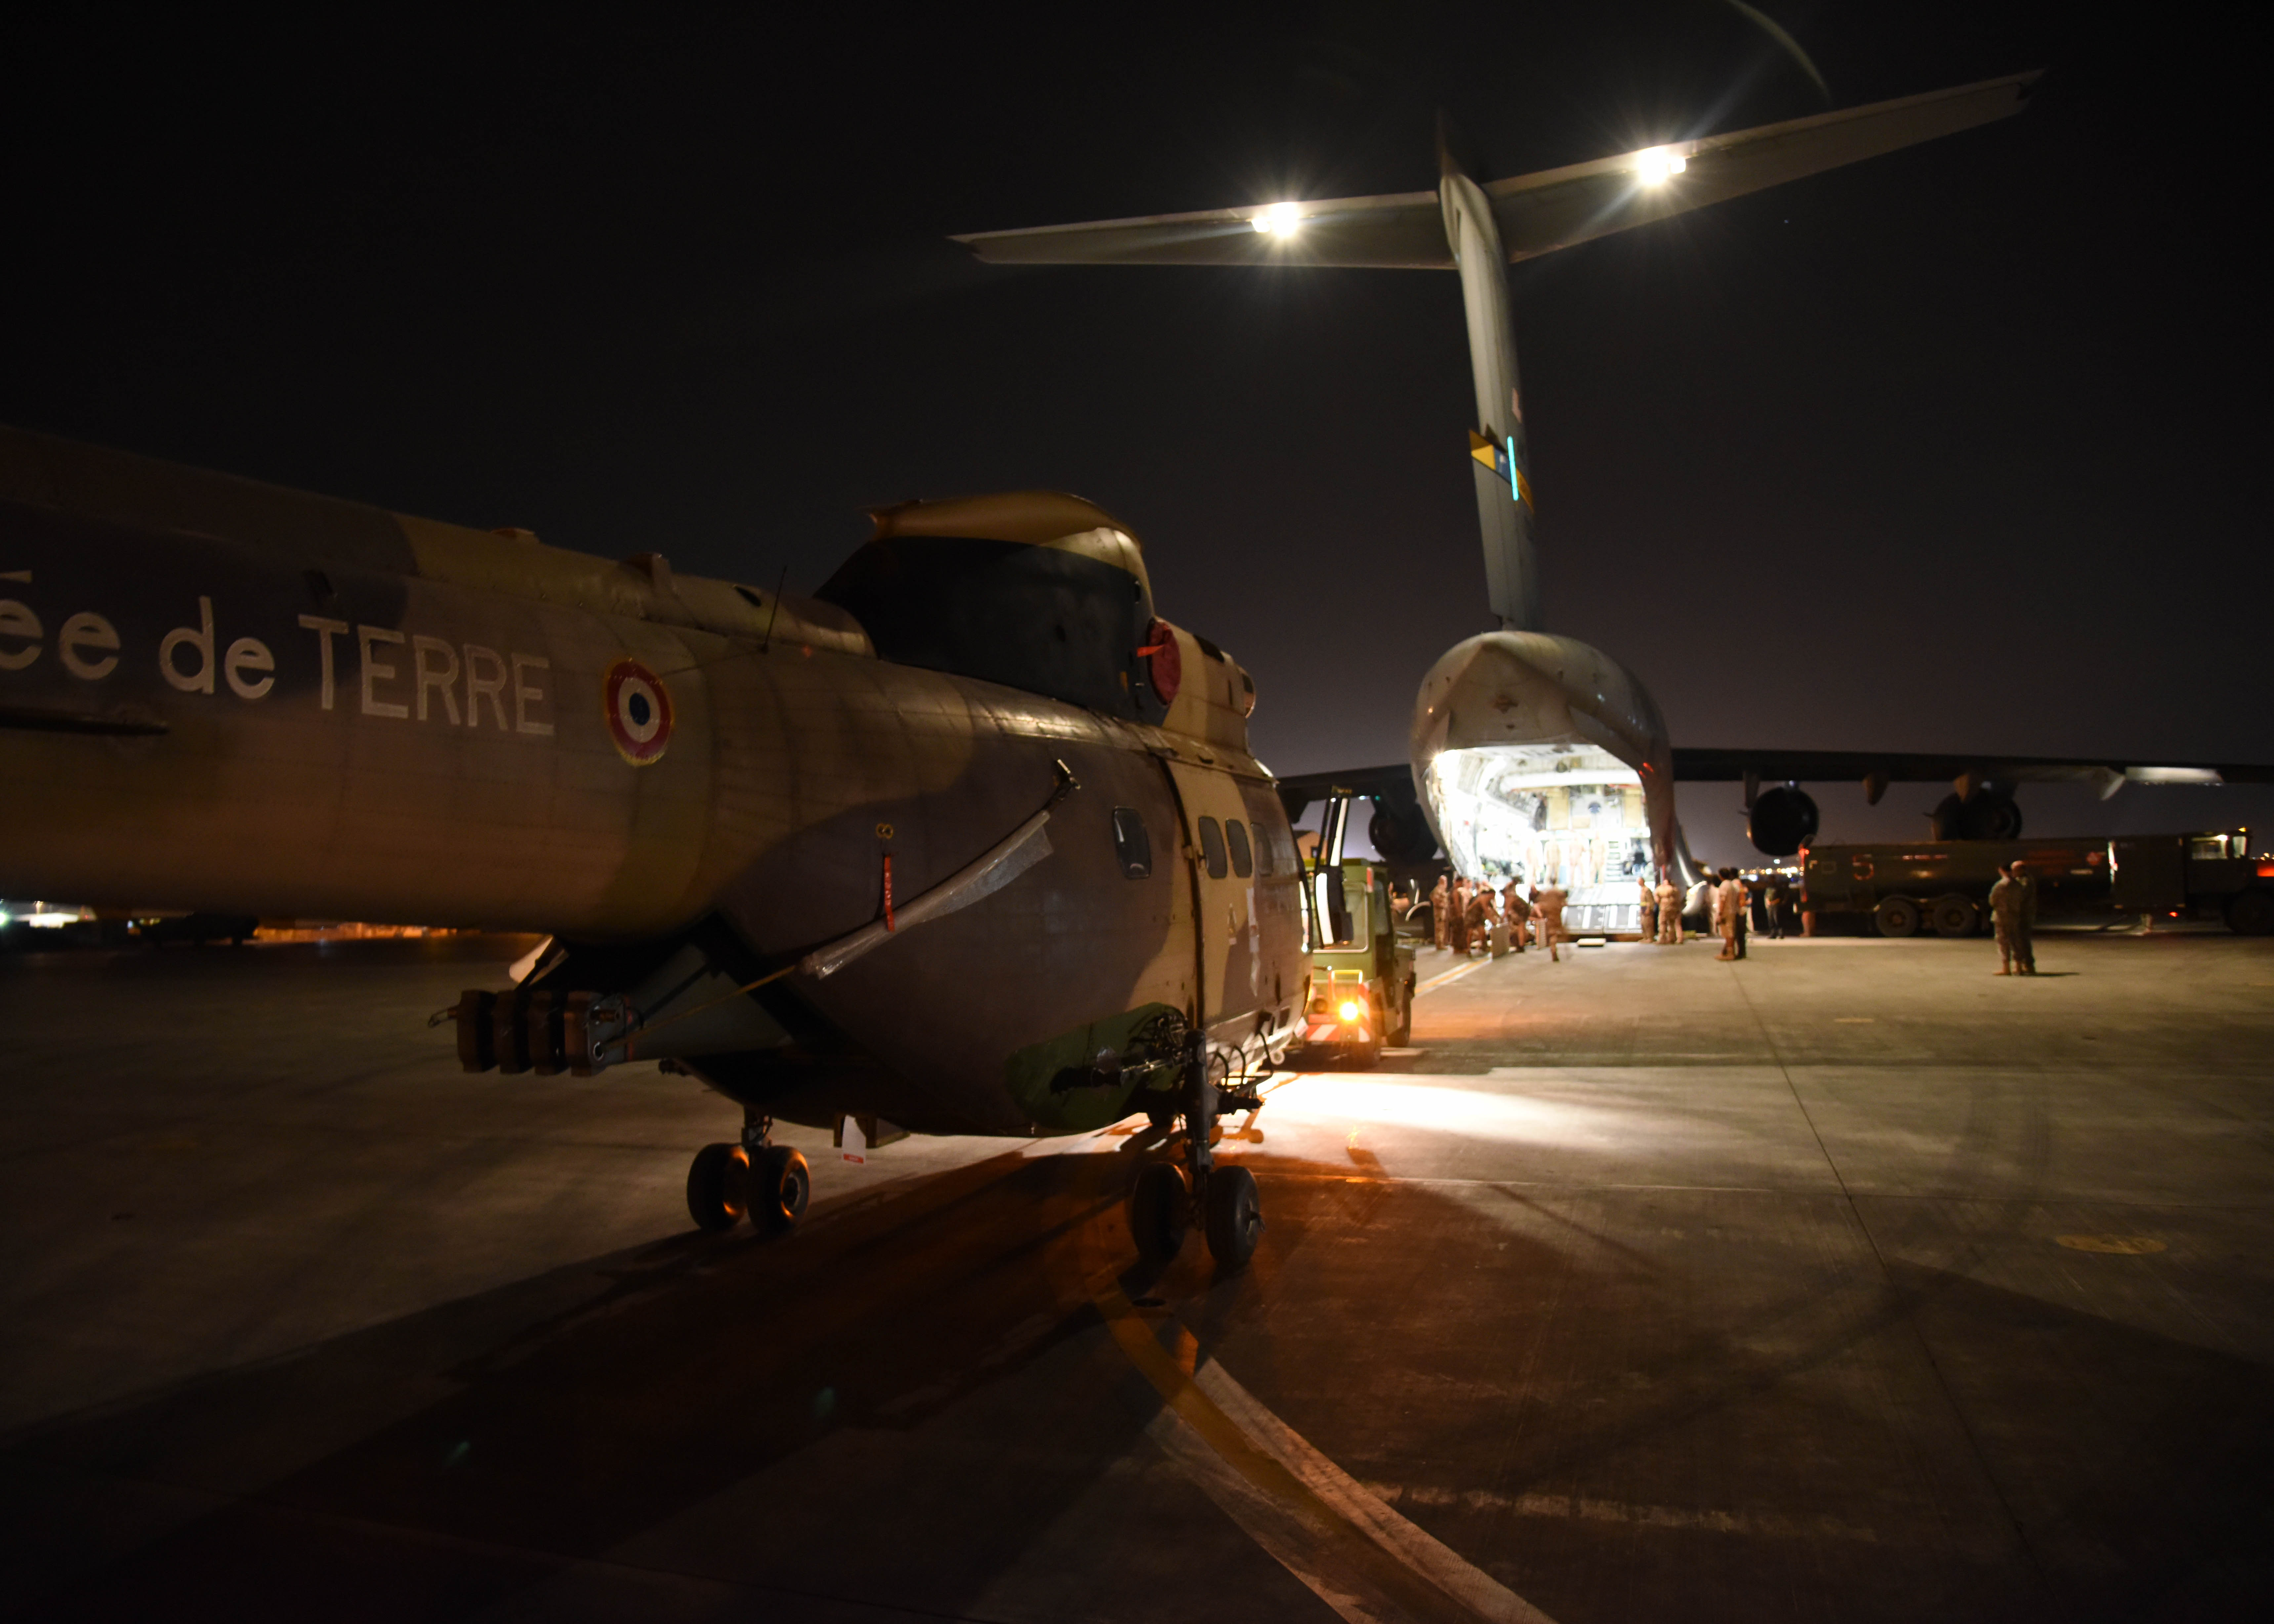 150822-N-DJ346-010 CAMP LEMONNIER, Djibouti (August 22, 2015) French and U.S. service members prepare to transport the first of two French Puma Helicopters and associated Passengers & Cargo to N'Djamena aboard a U.S. Air Force C-17 Globemaster. The helicopters support French operations at the intersecting borders of Libya, Chad and Niger deterring weapons and drug smuggling, and jihadist regularly crossing between nations. This is the first time France has received support from U.S. Forces in Djibouti for any mission outside of East Africa. (U.S. Navy photo by Chief Mass Communication Specialist Donald W. Randall/Released)